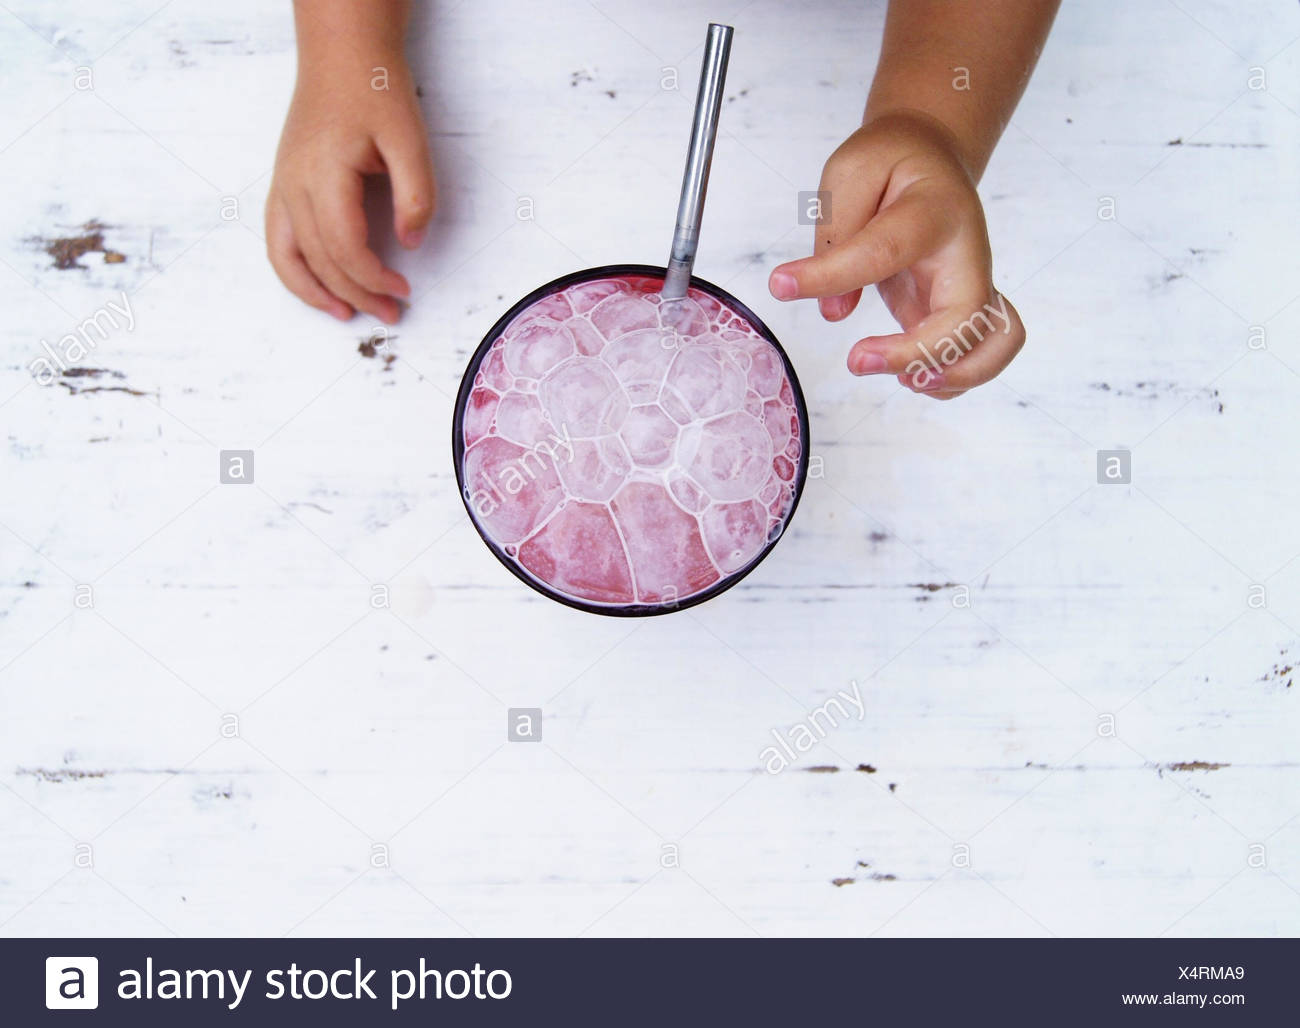 Child's hands reaching for a strawberry milkshake with bubbles - Stock Image